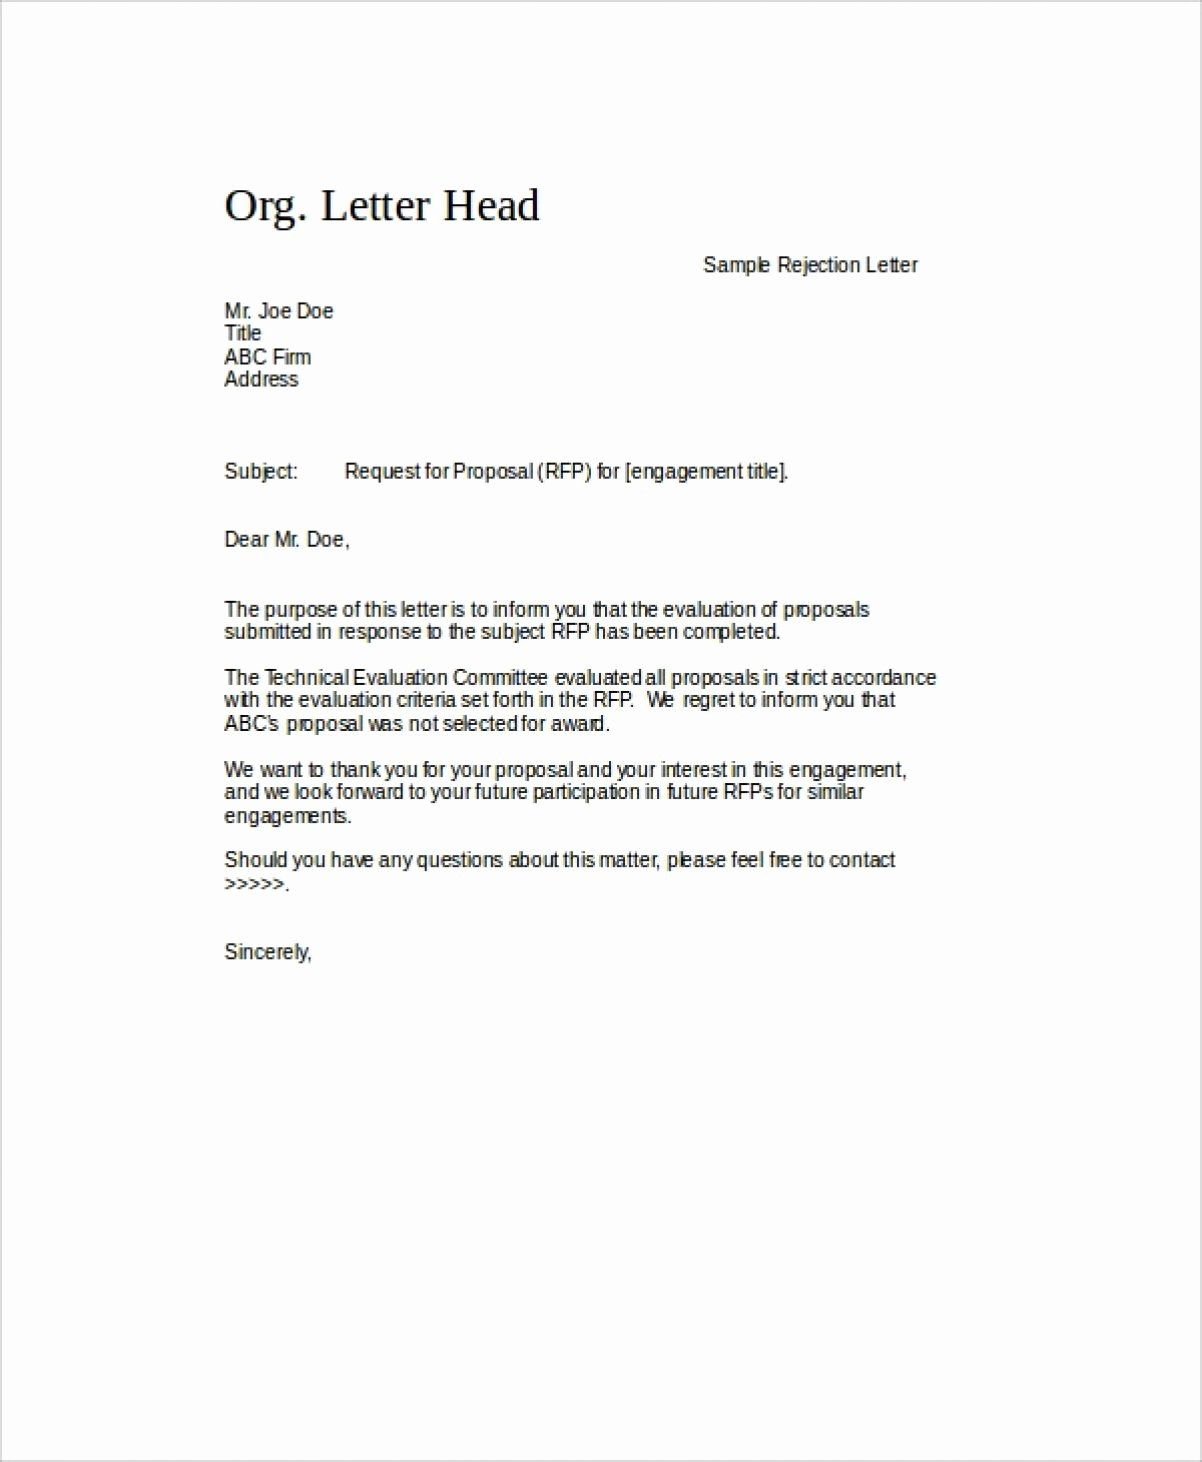 Request for Proposal Rejection Letter New 9 Rfp Rejection Letter